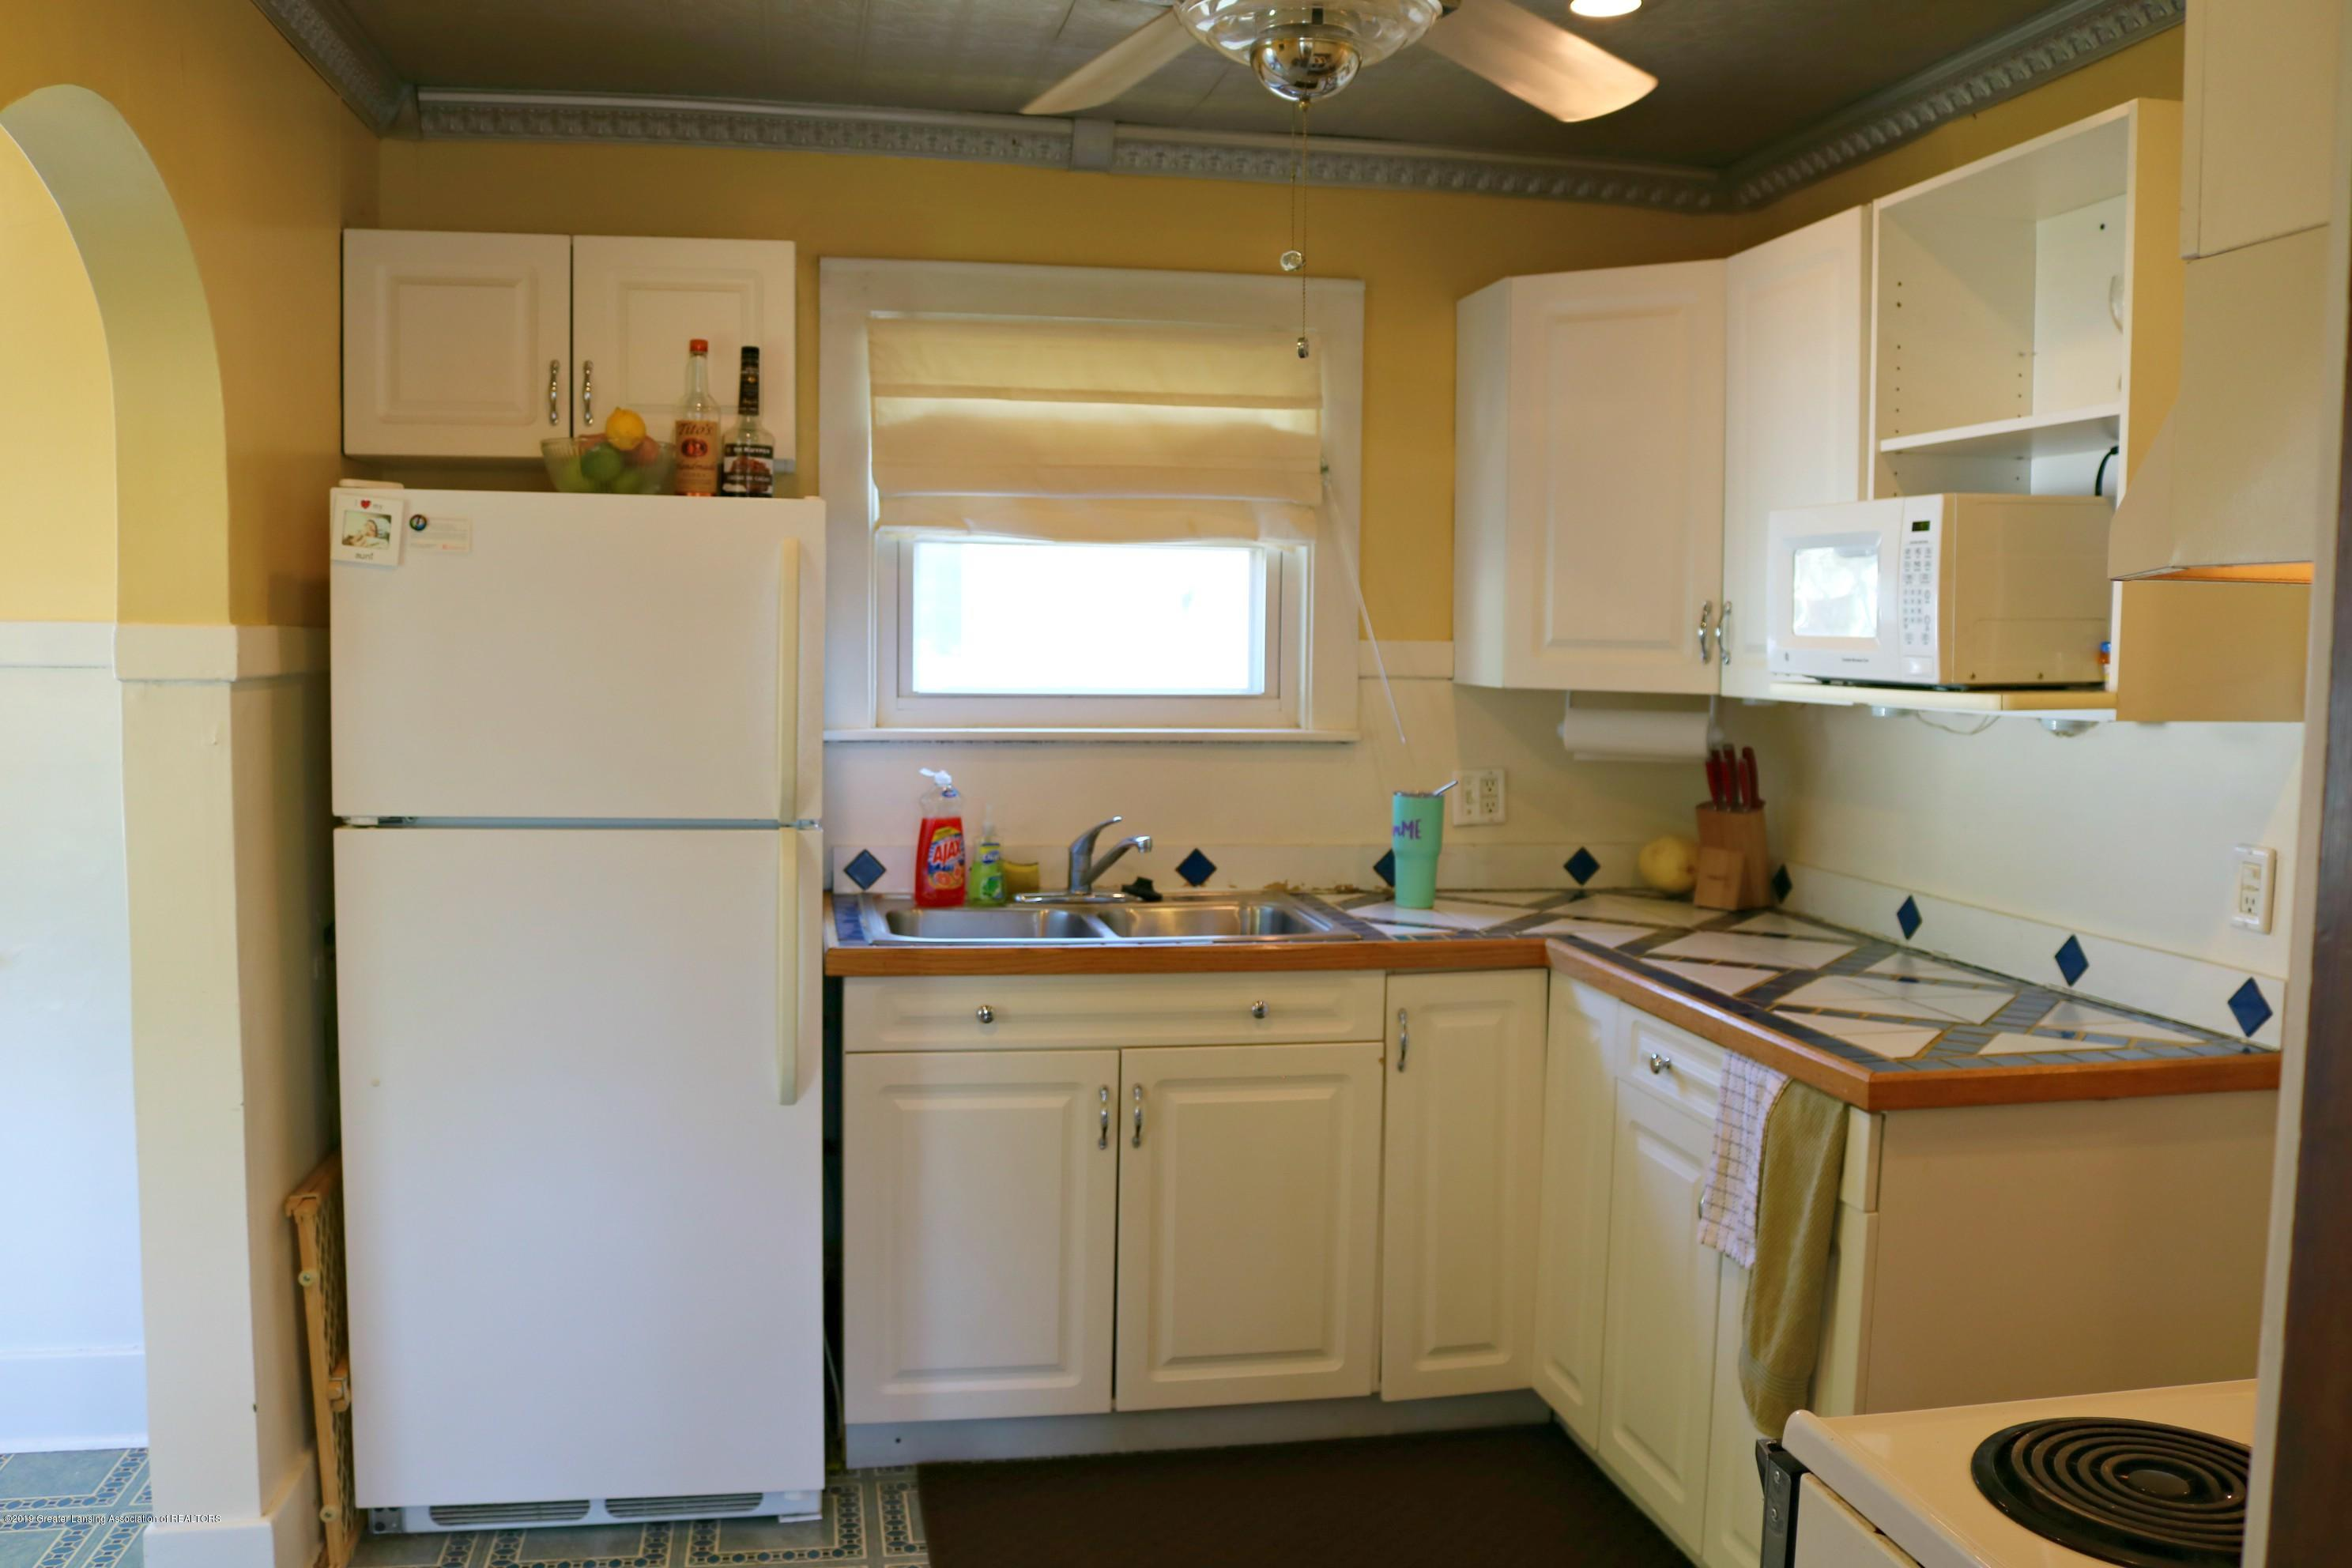 703 N Magnolia Ave - Kitchen - 6